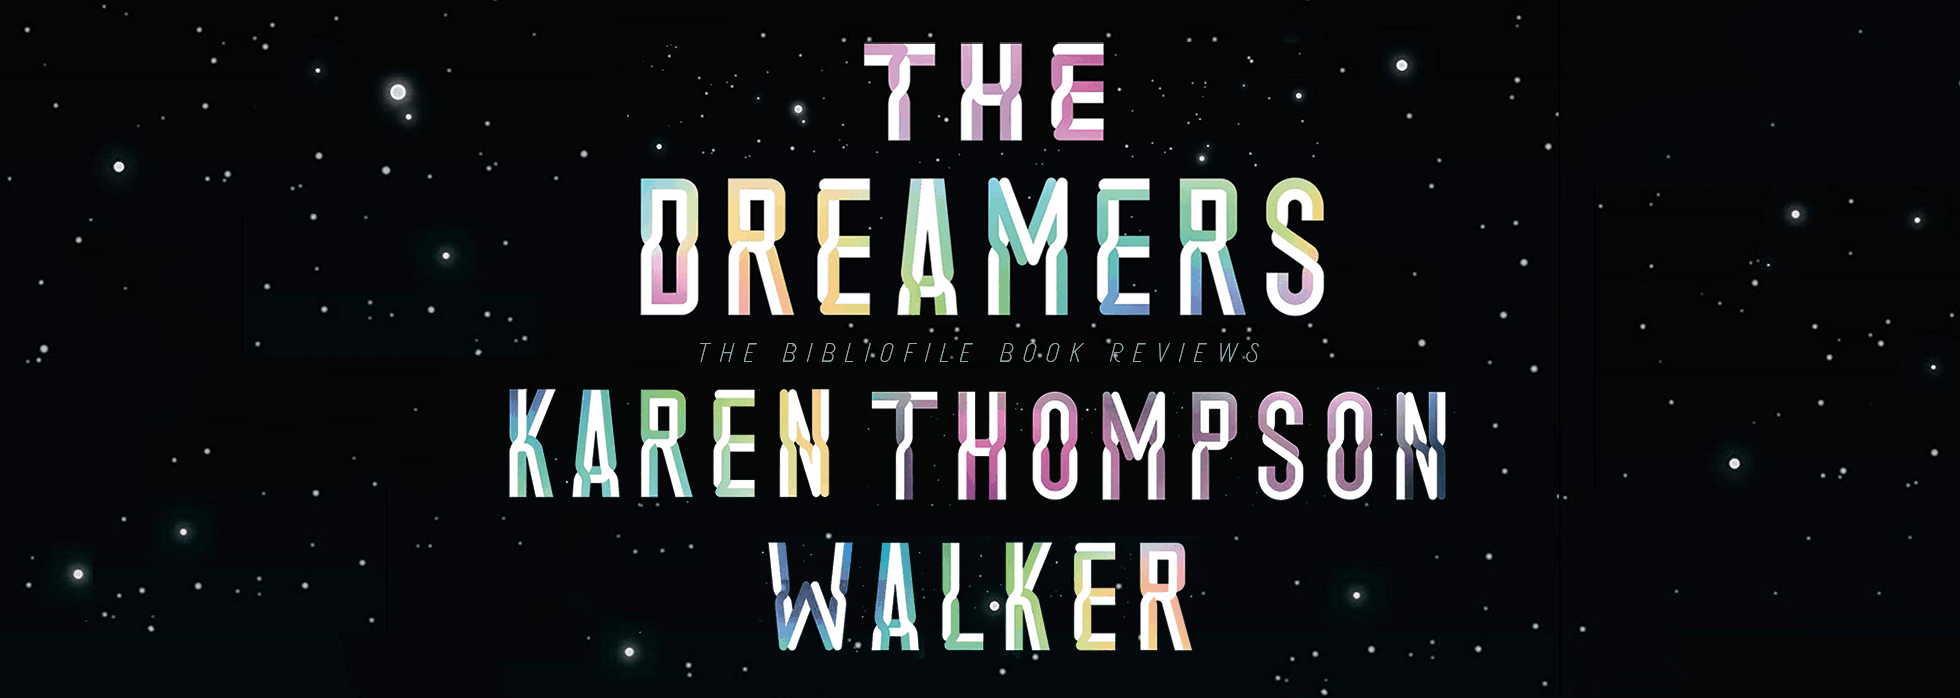 the dreamers karen thompson walker